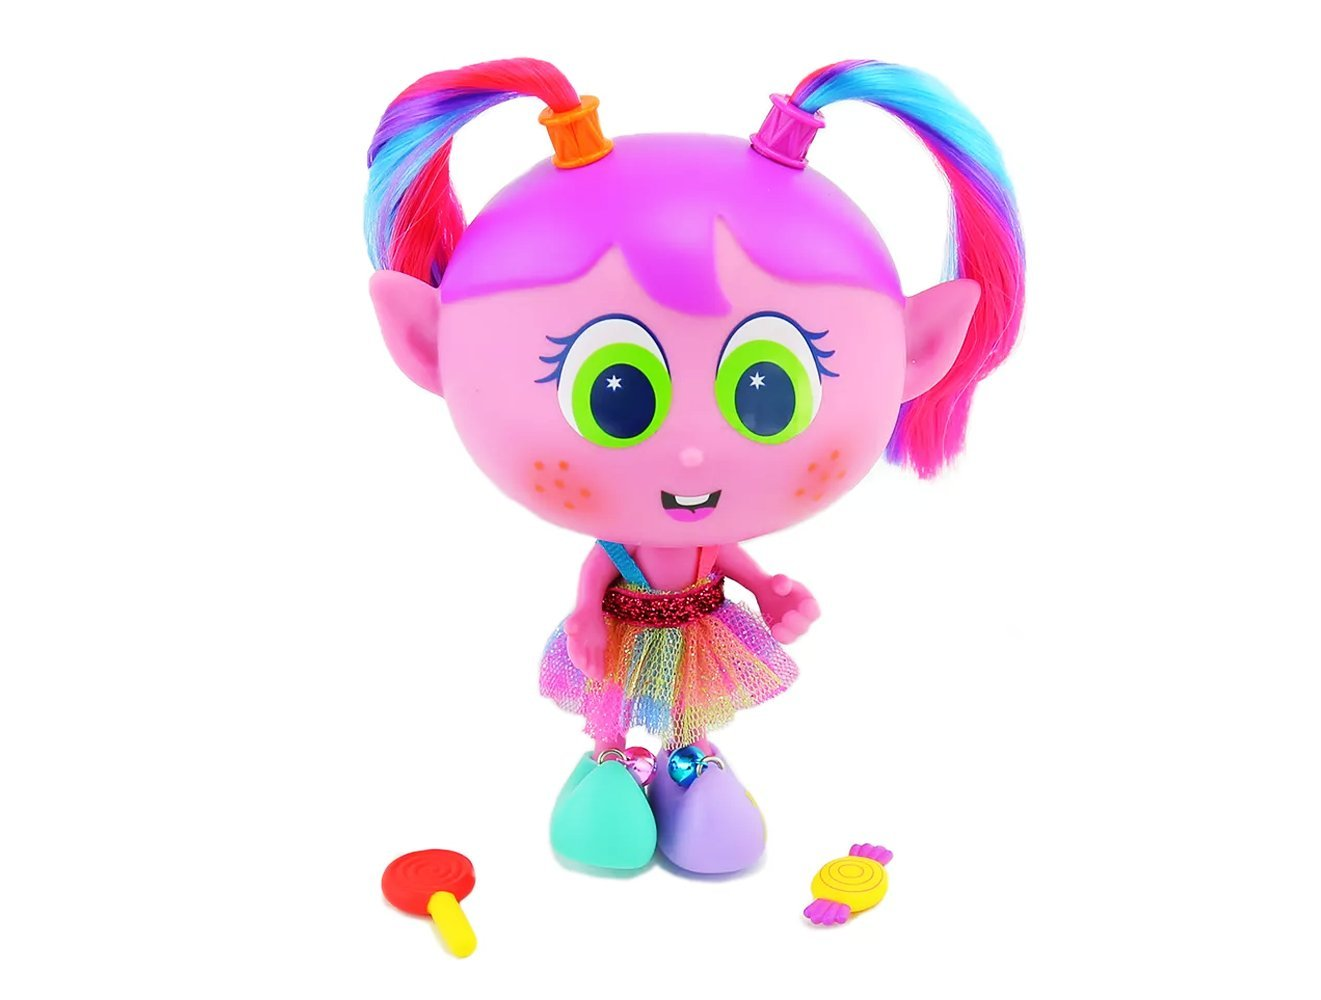 Cute Alushhhe Pink Elf w/ Green Eyes – Edition in Spanish – NEW Collection by K-simerito Distroller